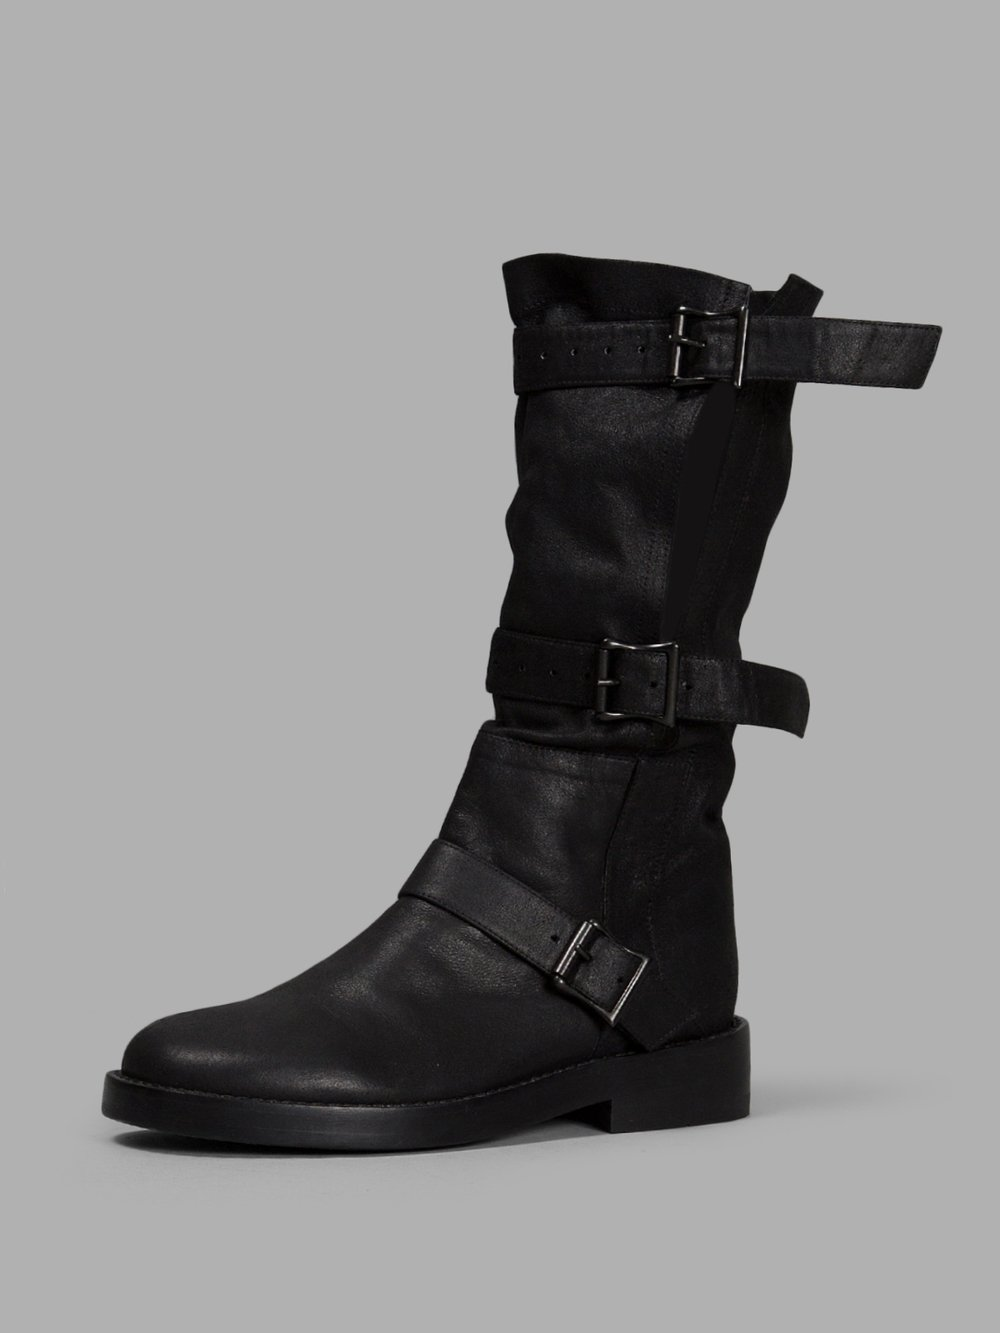 Black Buckle Boots Ann Demeulemeester Discount 2018 New Free Shipping Ewu2VtA8bY